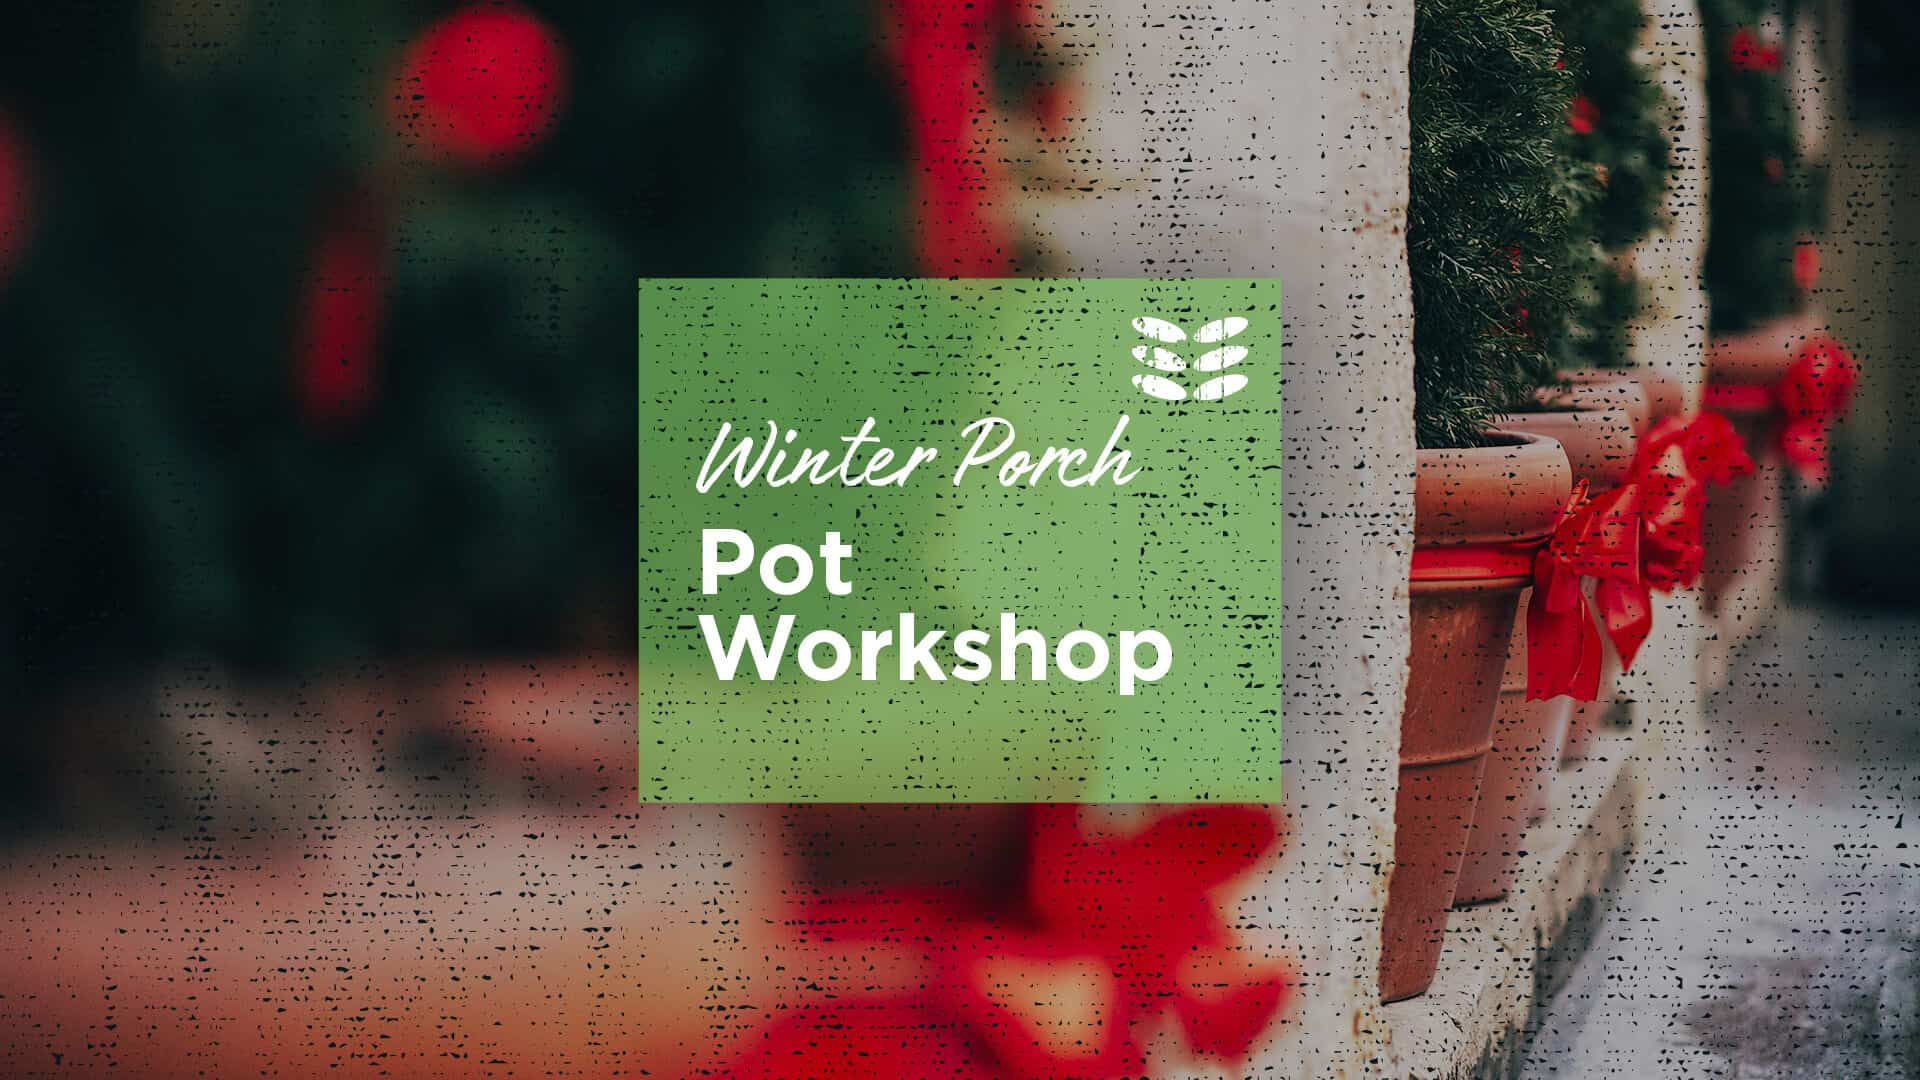 Winter Porch Pot Workshop